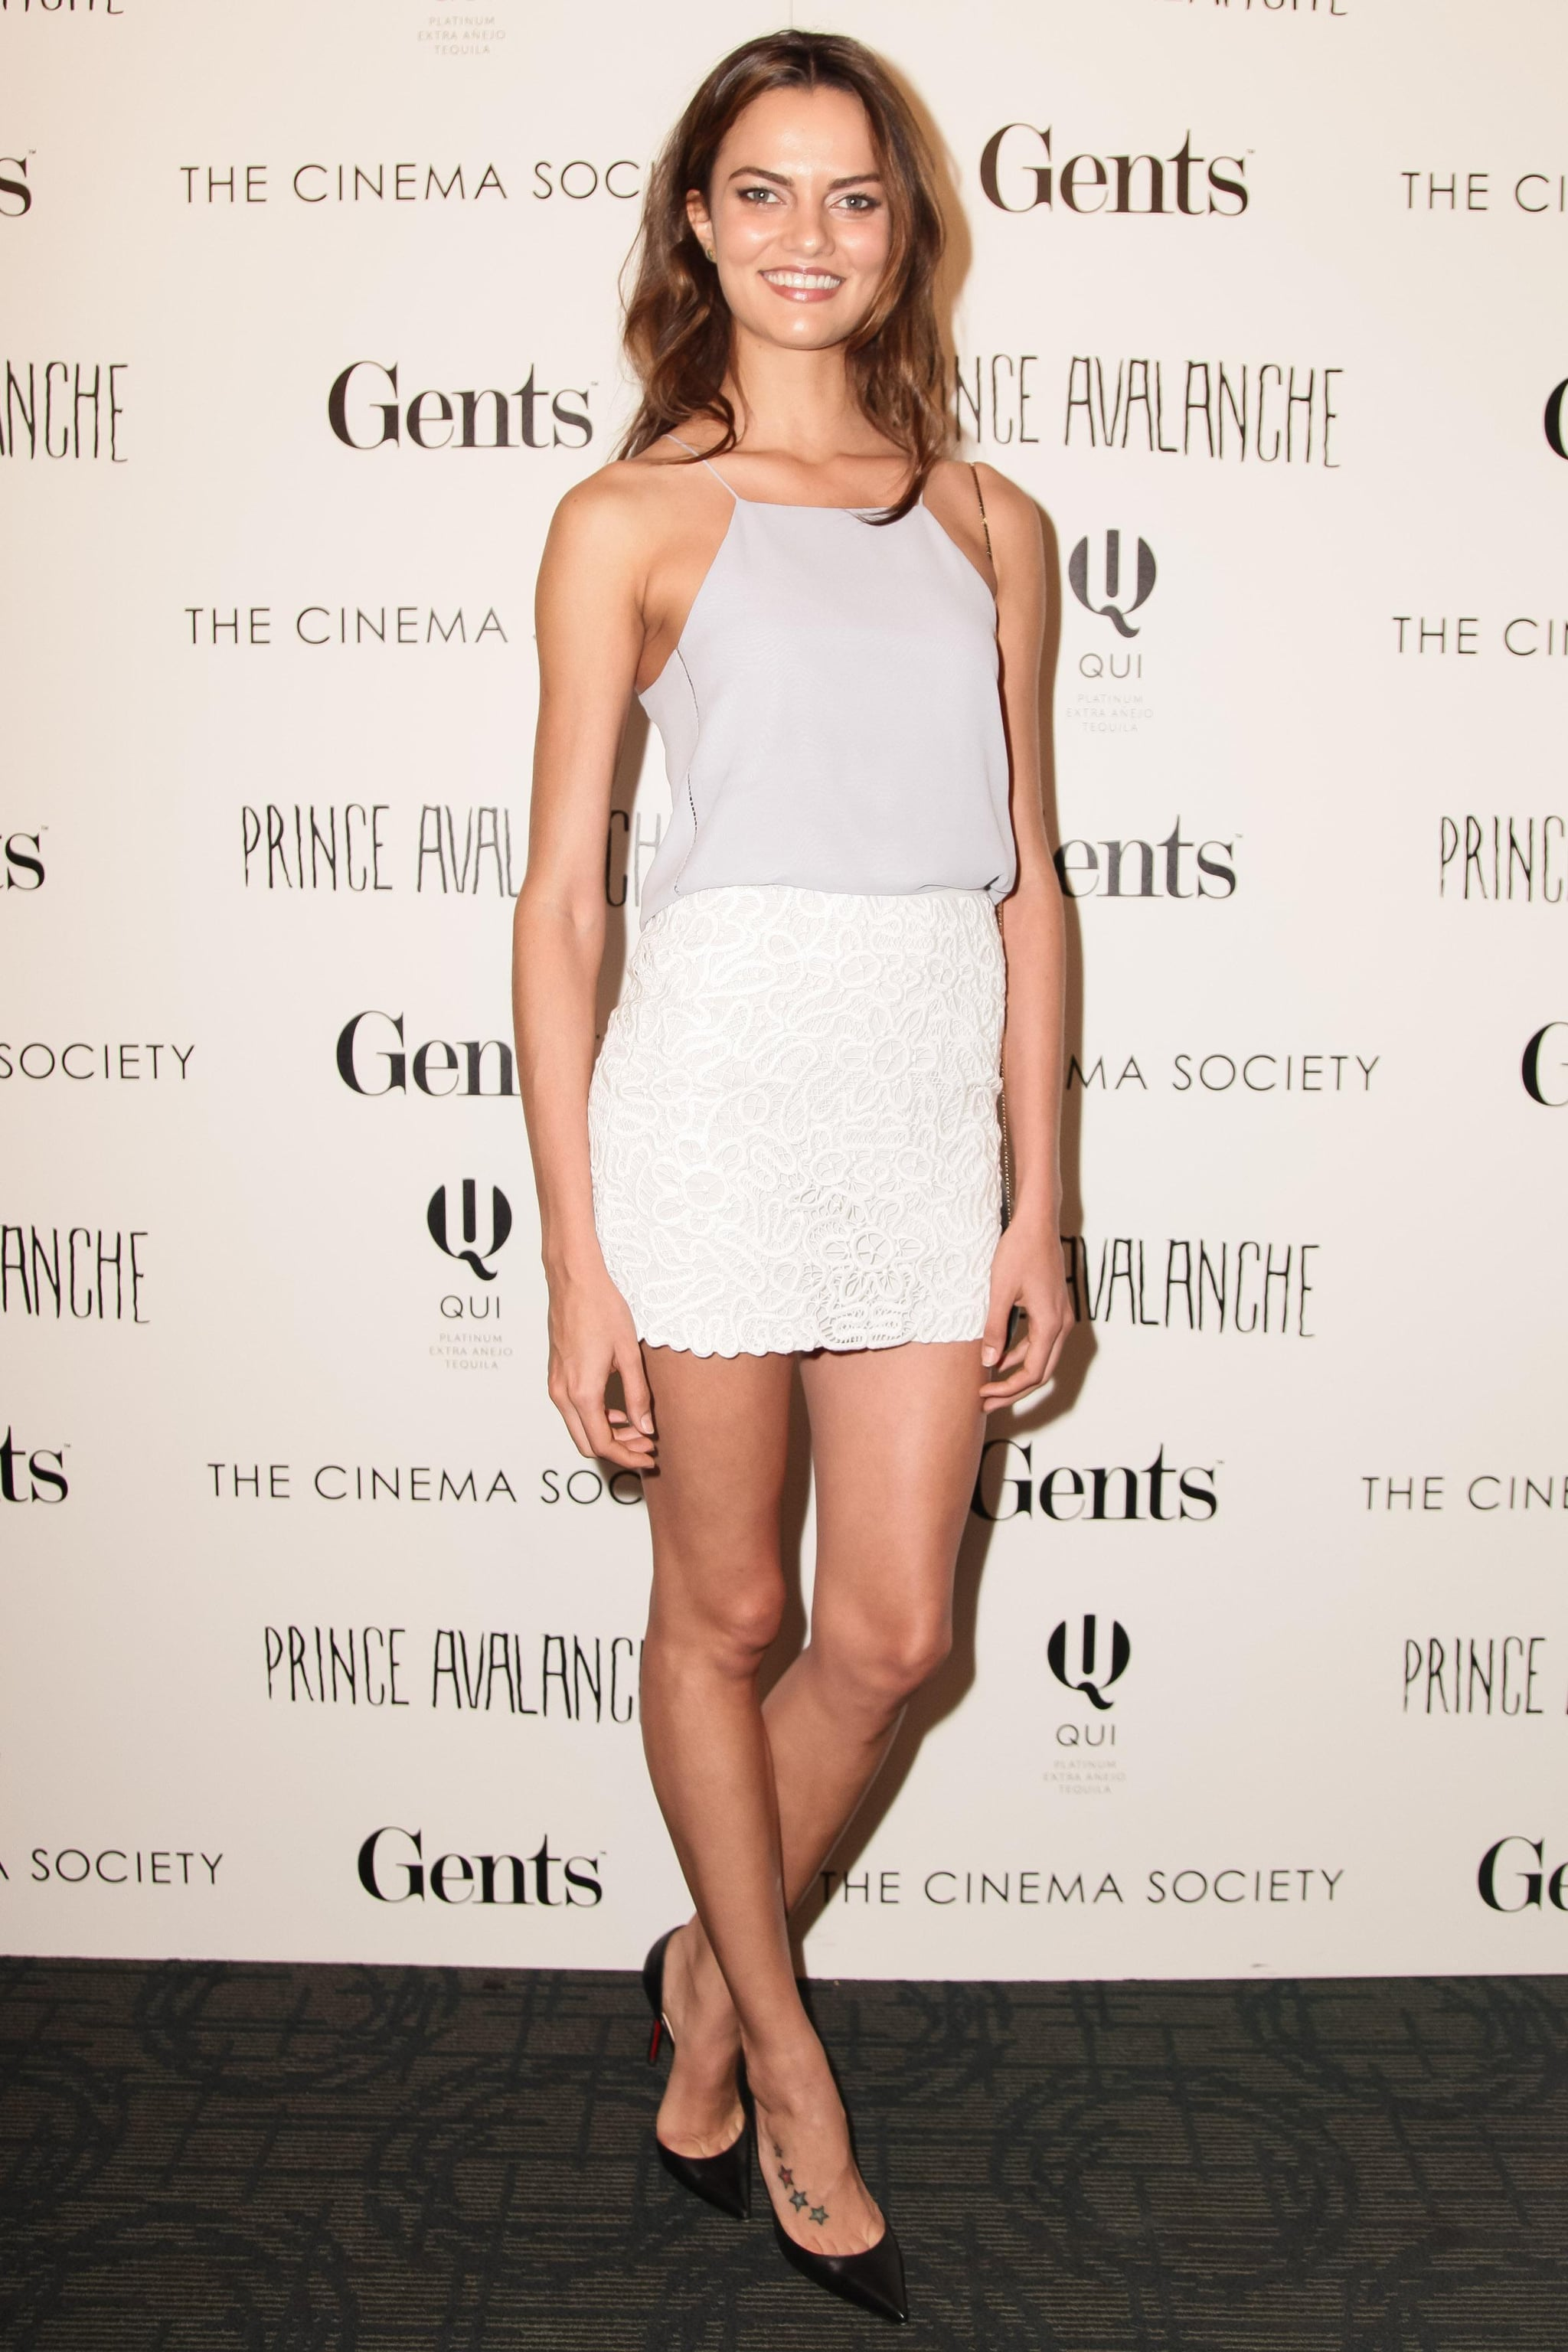 At The Cinema Society screening of Prince Avalanche, Barbara Fialho arrived in a minimalist ensemble.